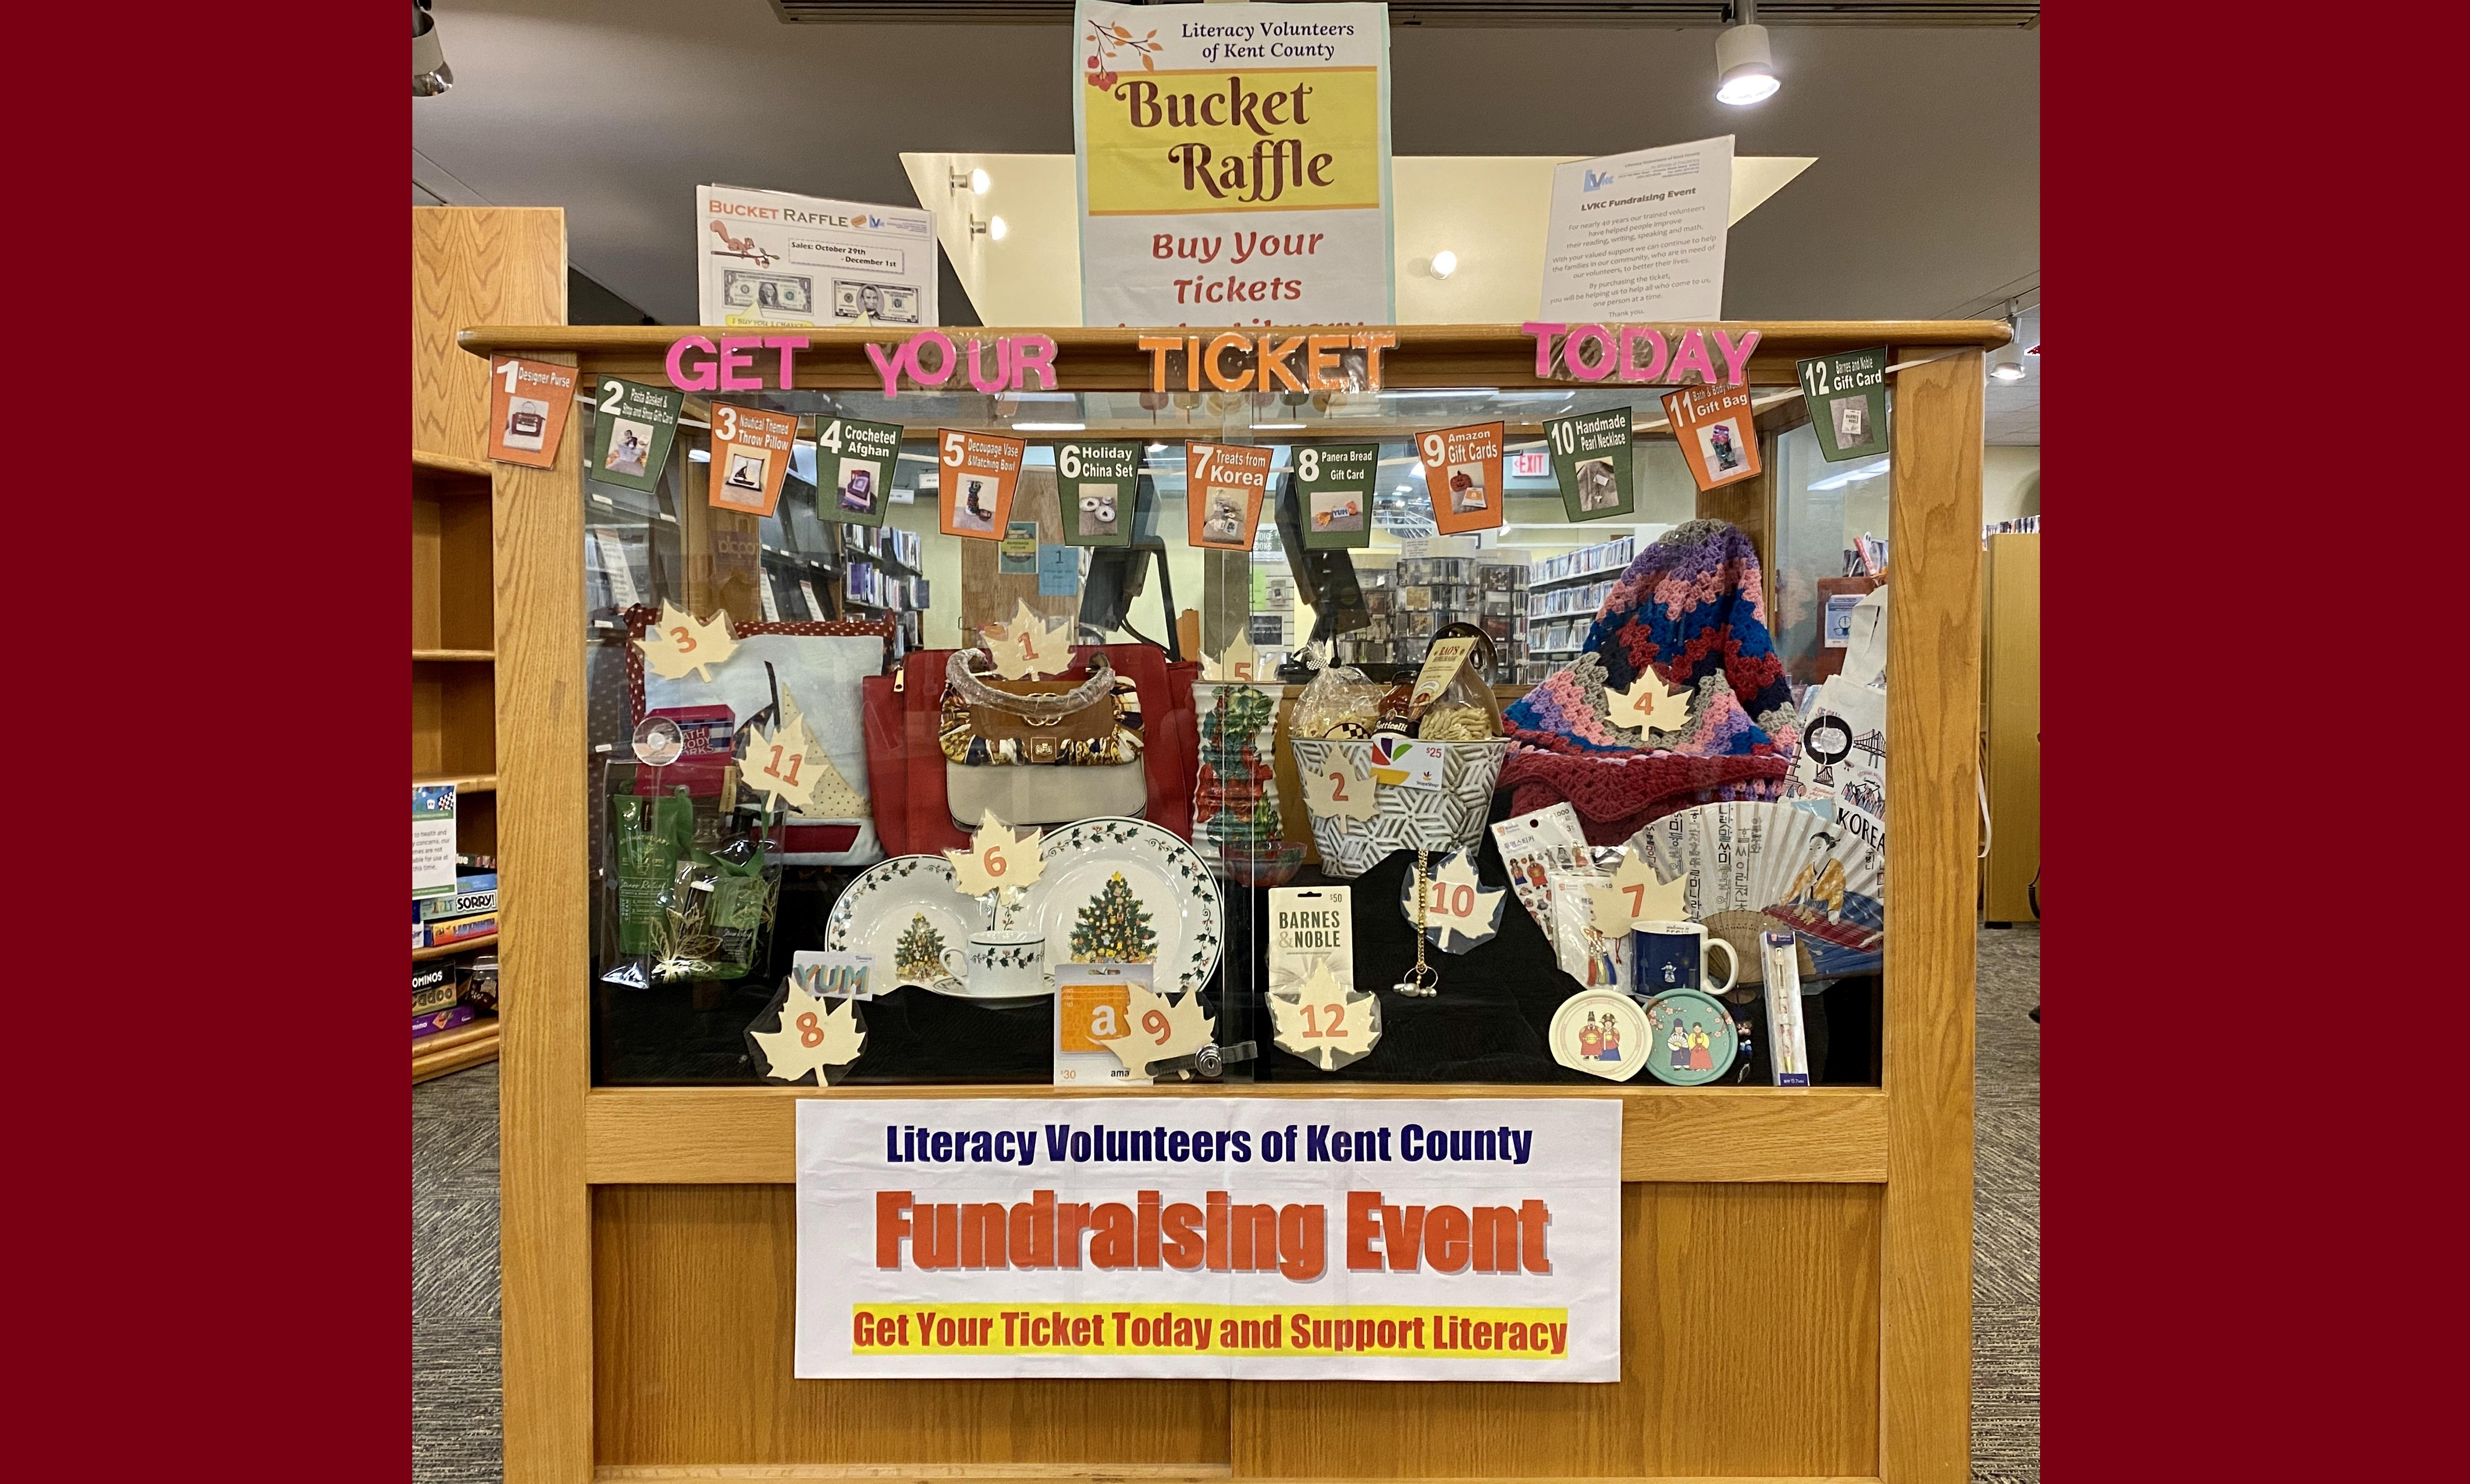 Bucket Raffle items in library display case.